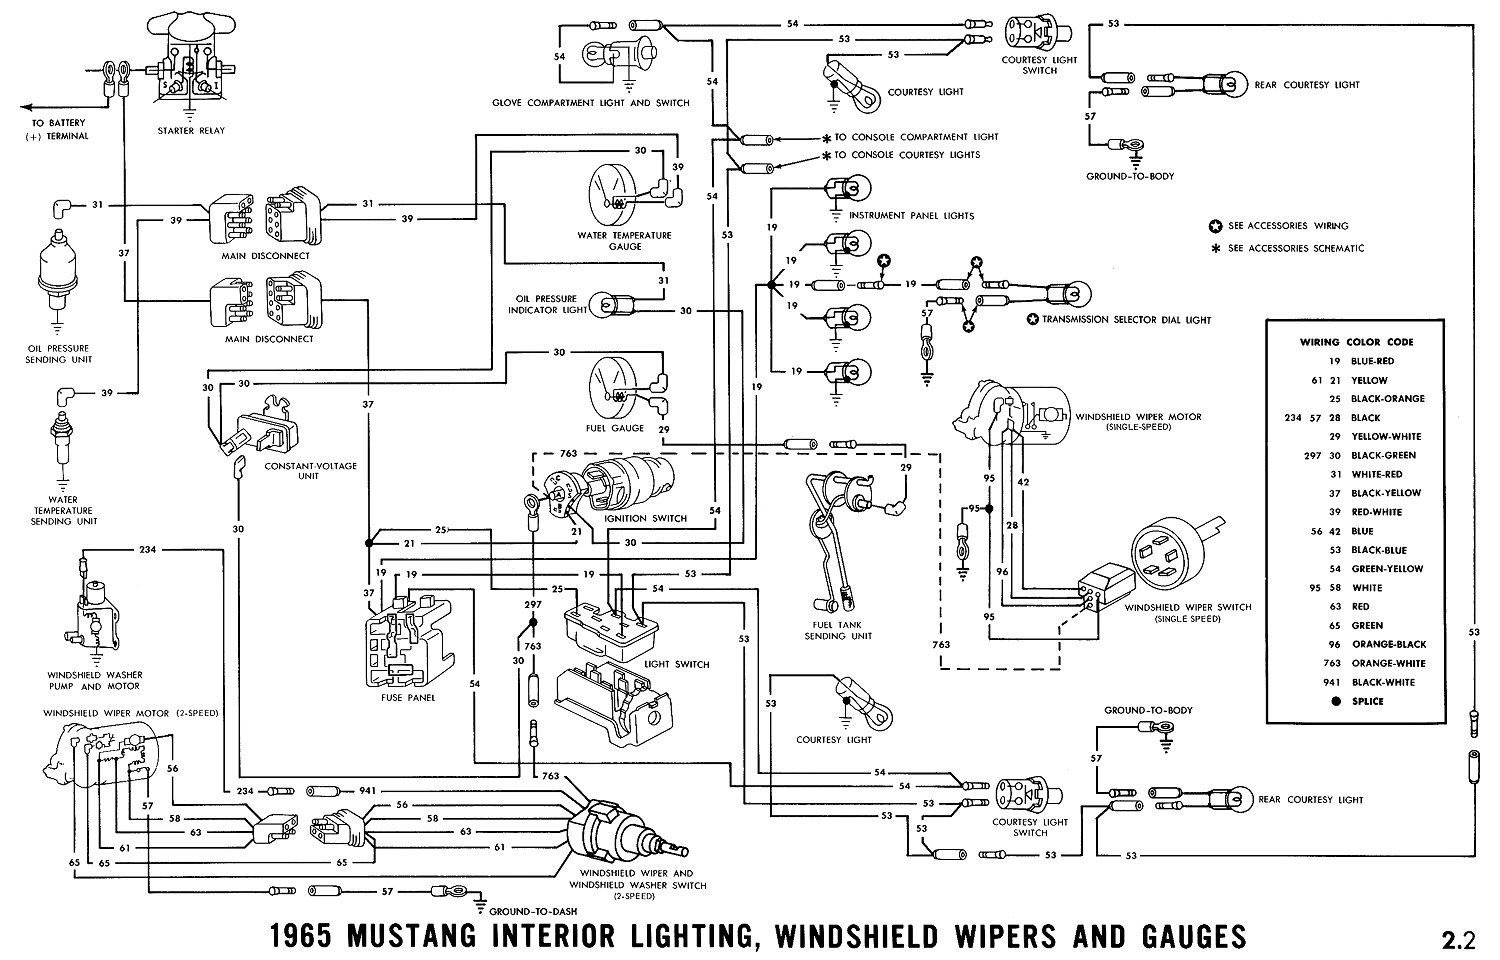 1965g 1965 mustang wiring diagrams average joe restoration 1965 Mustang Fuse Panel at fashall.co